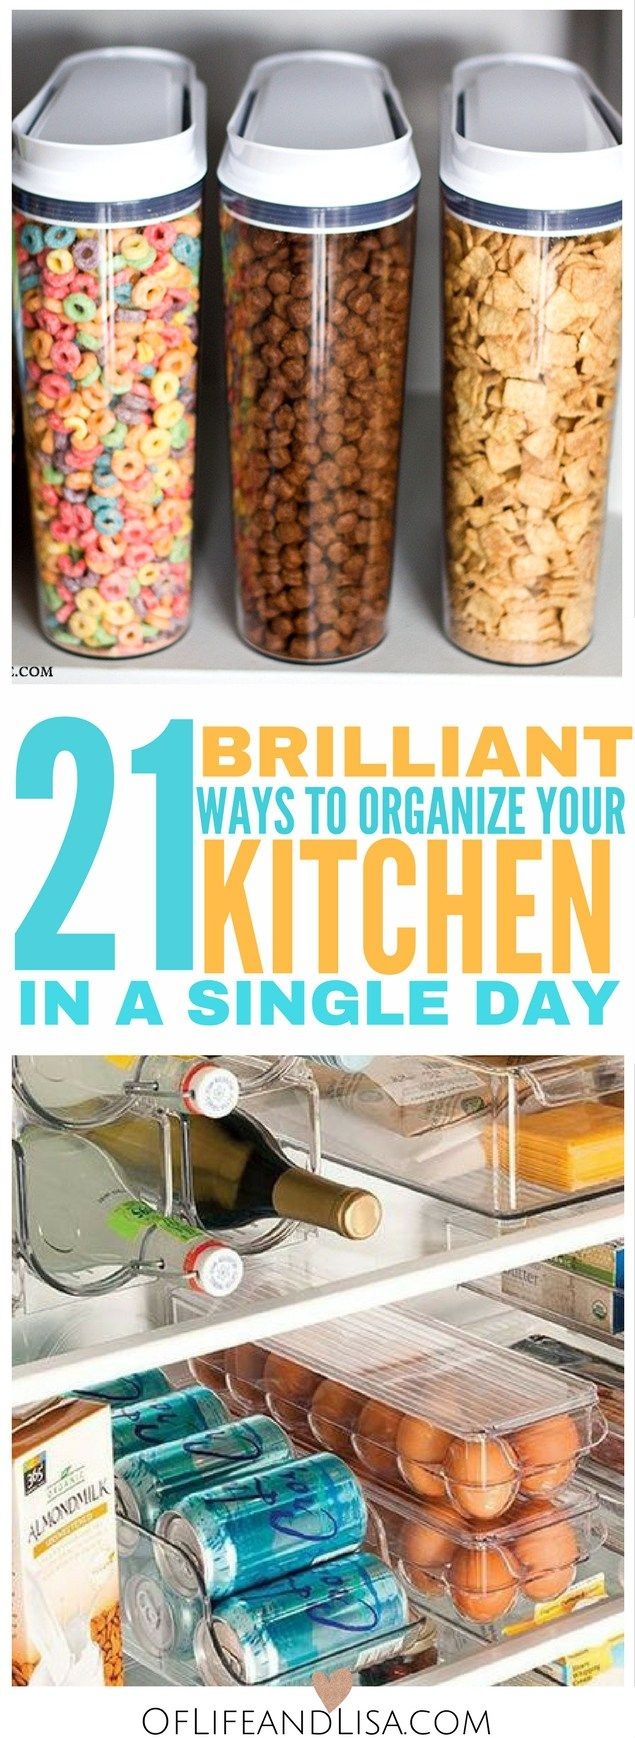 Ideas for kitchen organization - 21 Brilliant Diy Kitchen Organization Ideas